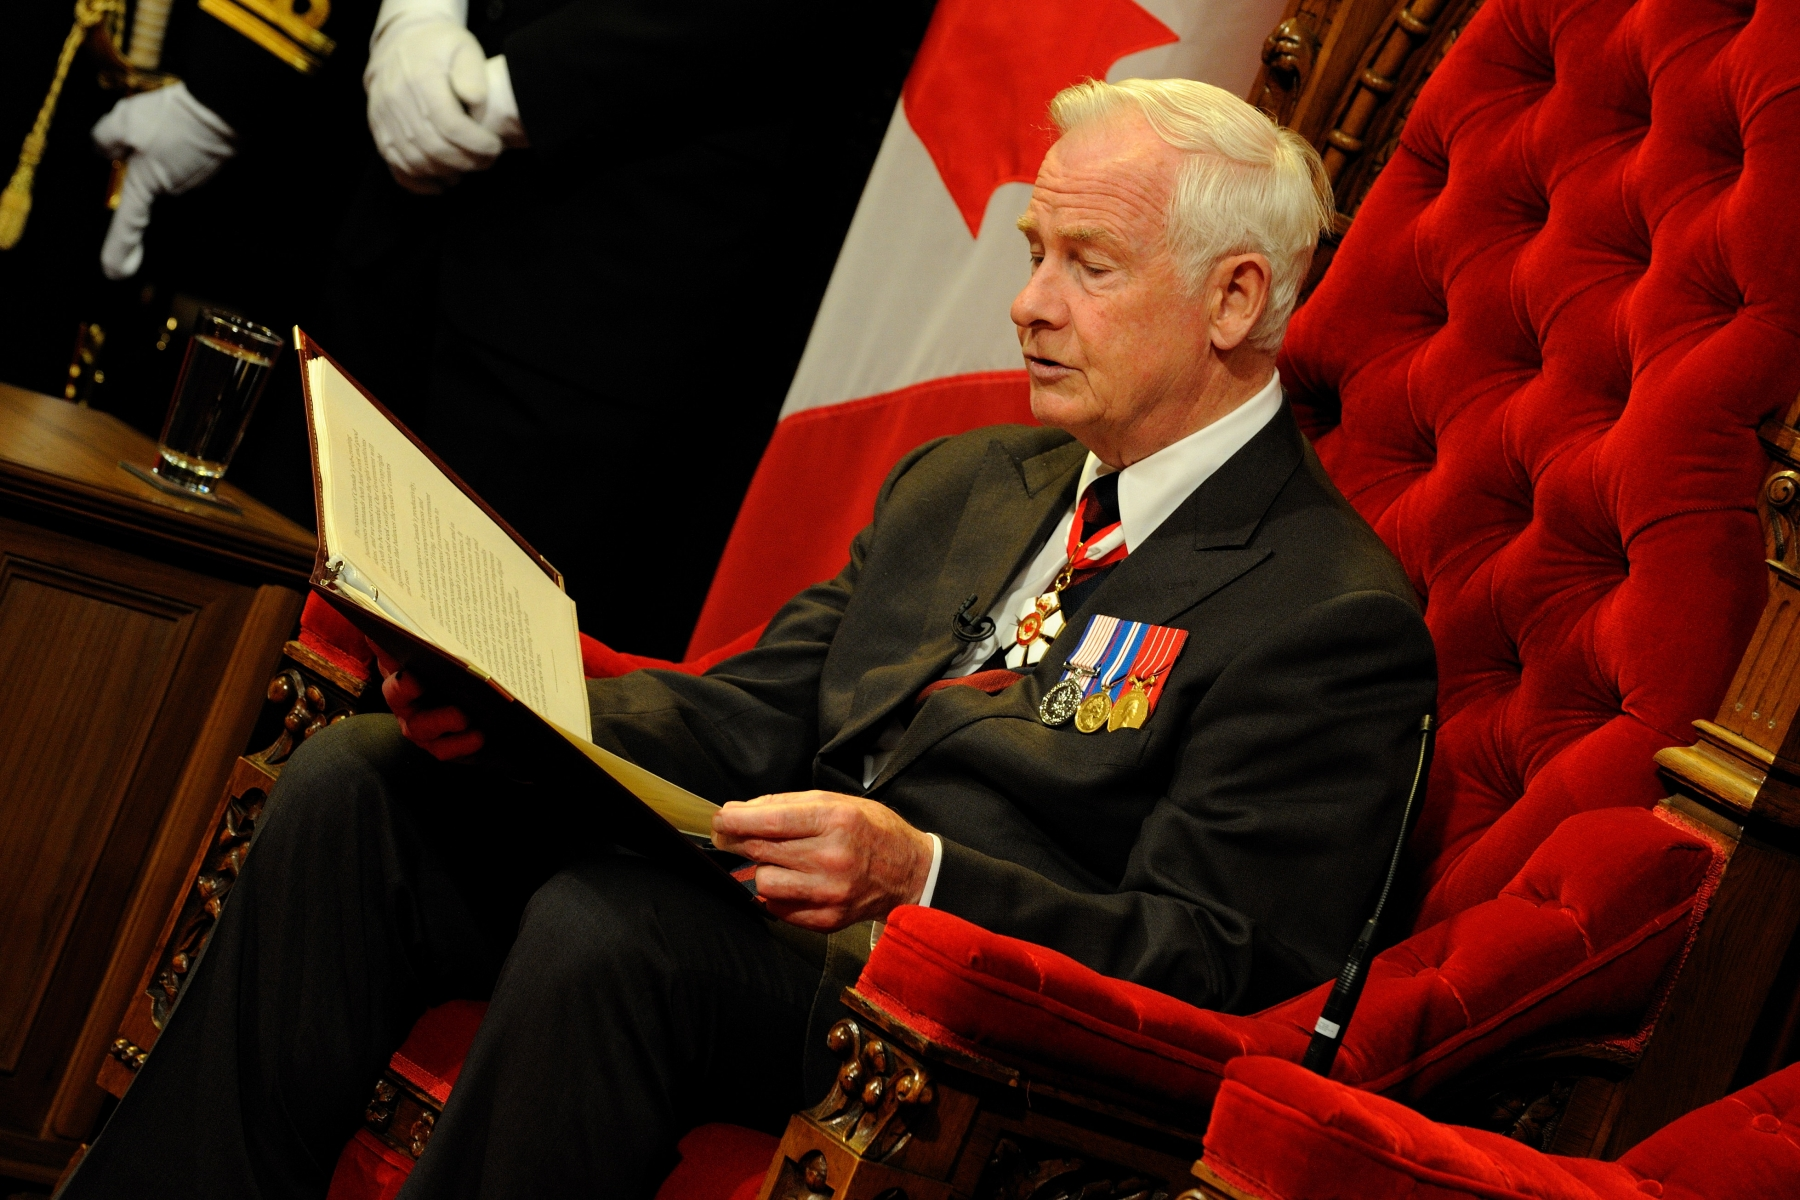 It is called the Speech from the Throne because the Governor General reads it while sitting in the seat in the Senate Chamber reserved for the Head of State or her representative, as the head of Canada's system of executive government. The Governor General reads the Speech to a gathering of Parliamentarians (Members of the House of Commons and Senators) and others, such as the Judges of the Supreme Court of Canada.